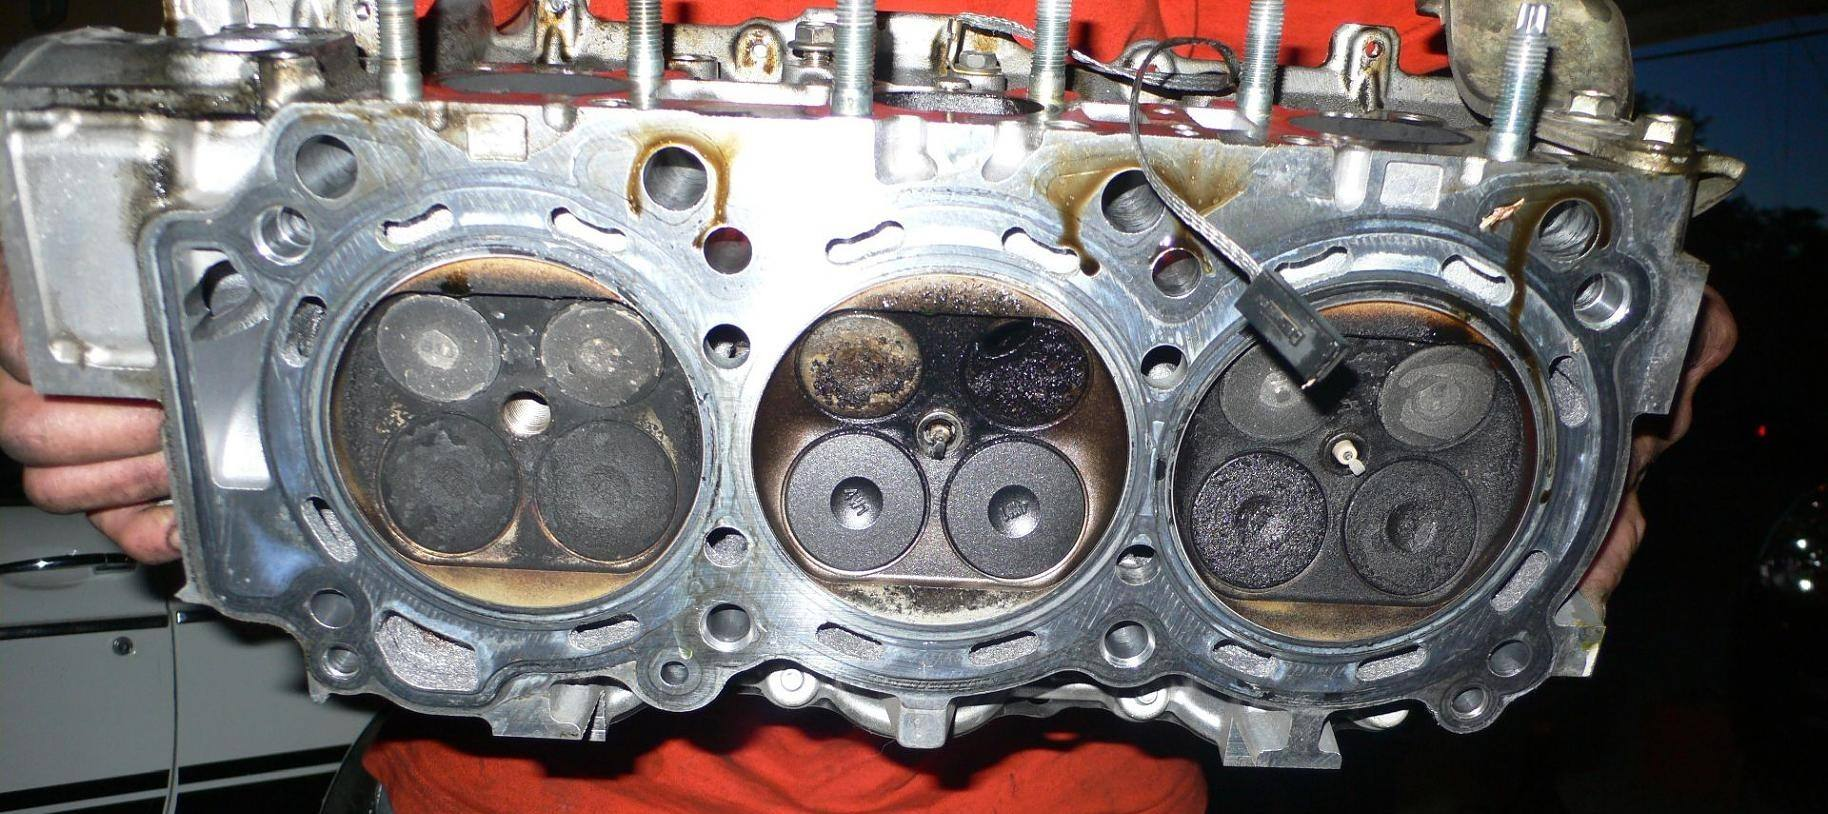 Engine misfire does not help decrease fuel consumption